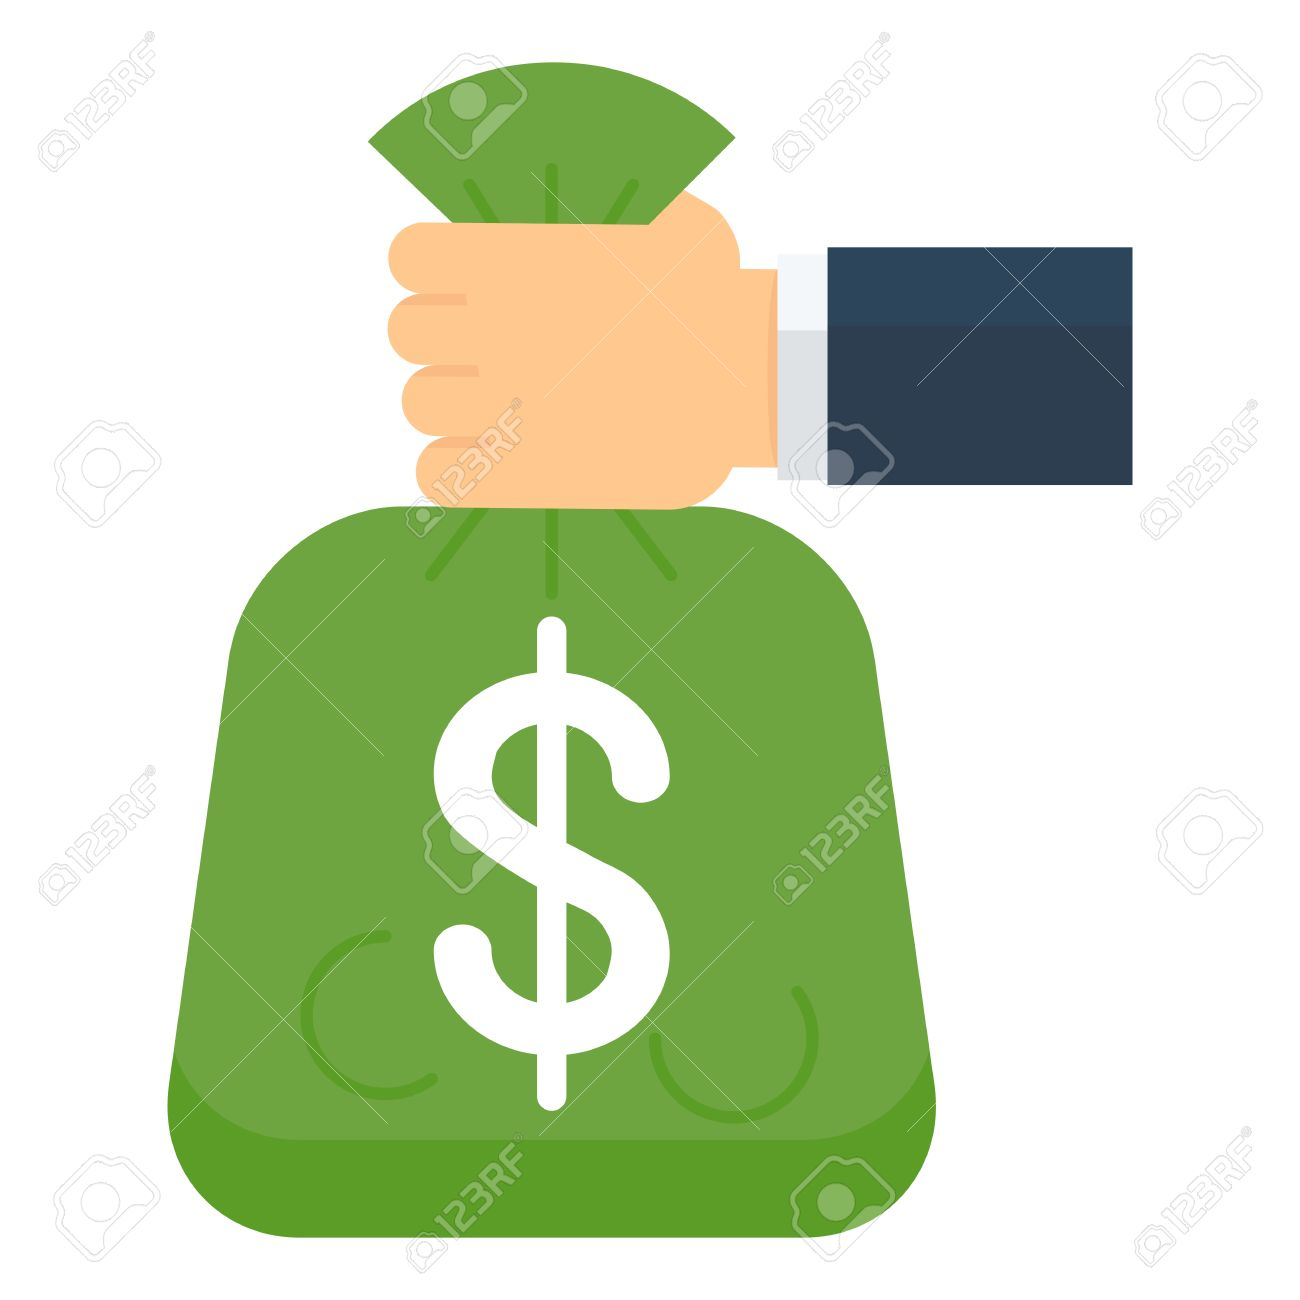 Cash loans logo picture 8